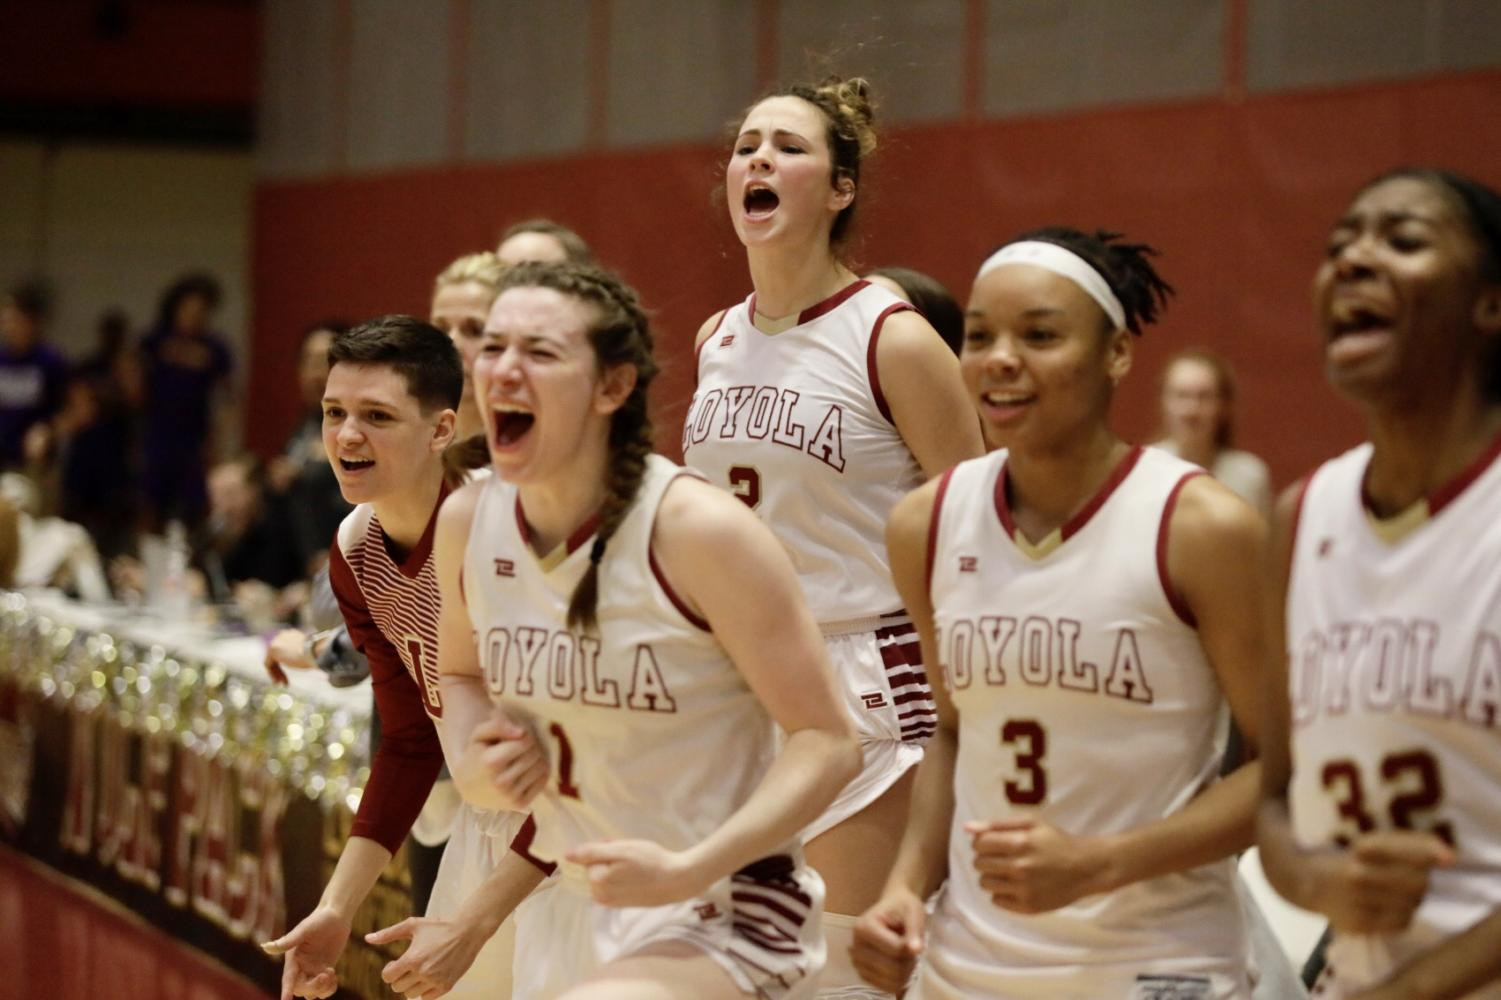 Loyola's women's basketball team celebrates a play versus Bethel University in The Den on Feb. 14. The women's team ended the regular season as the No. 2 seed in the conference. Photo credit: Andres Fuentes